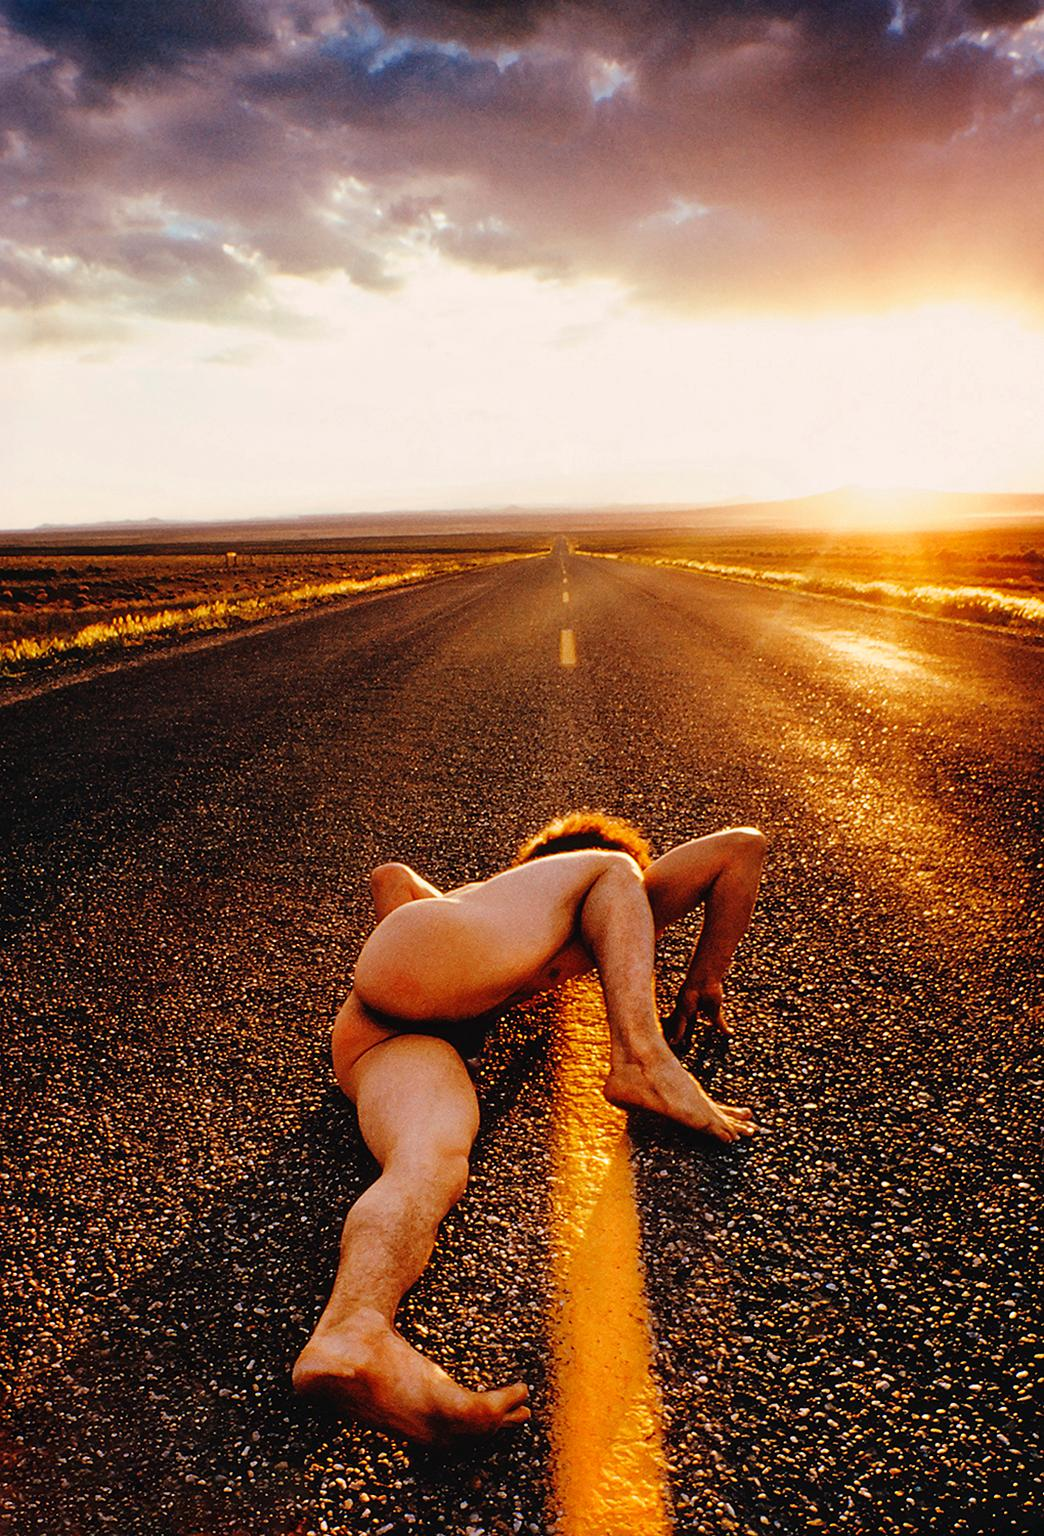 Nude man on Endless Surreal Road